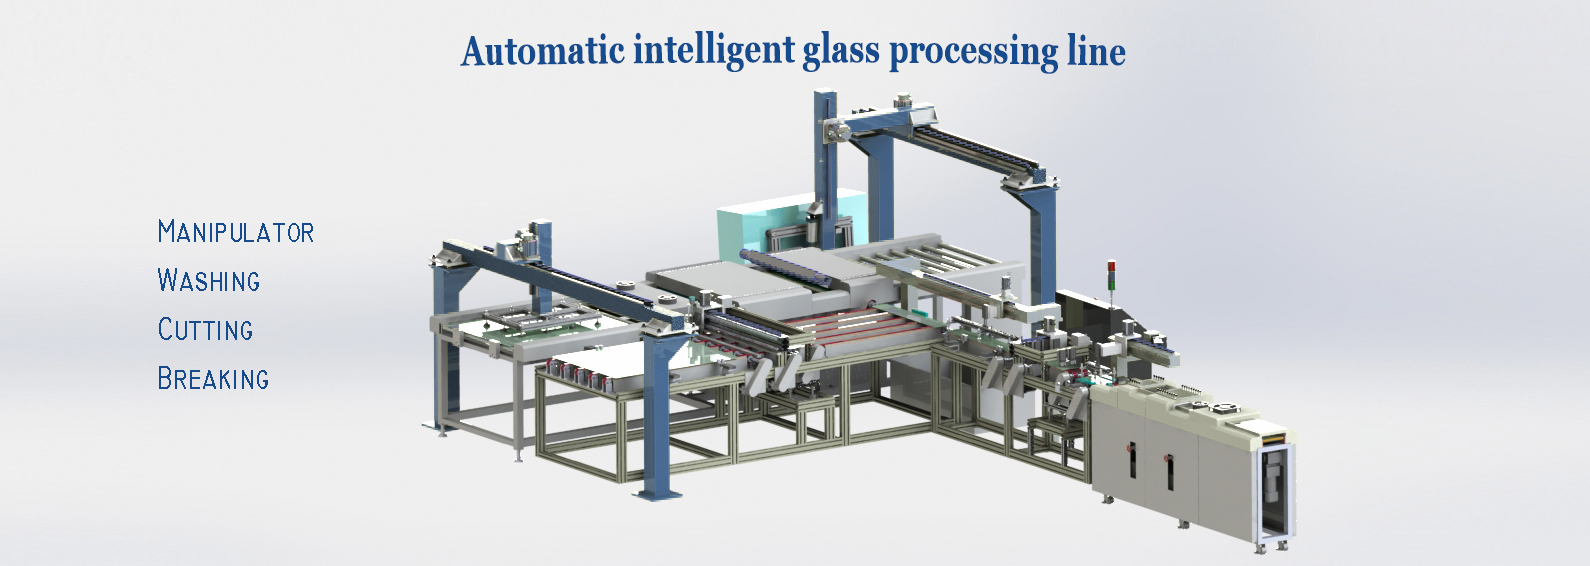 High intelligent glass processing line